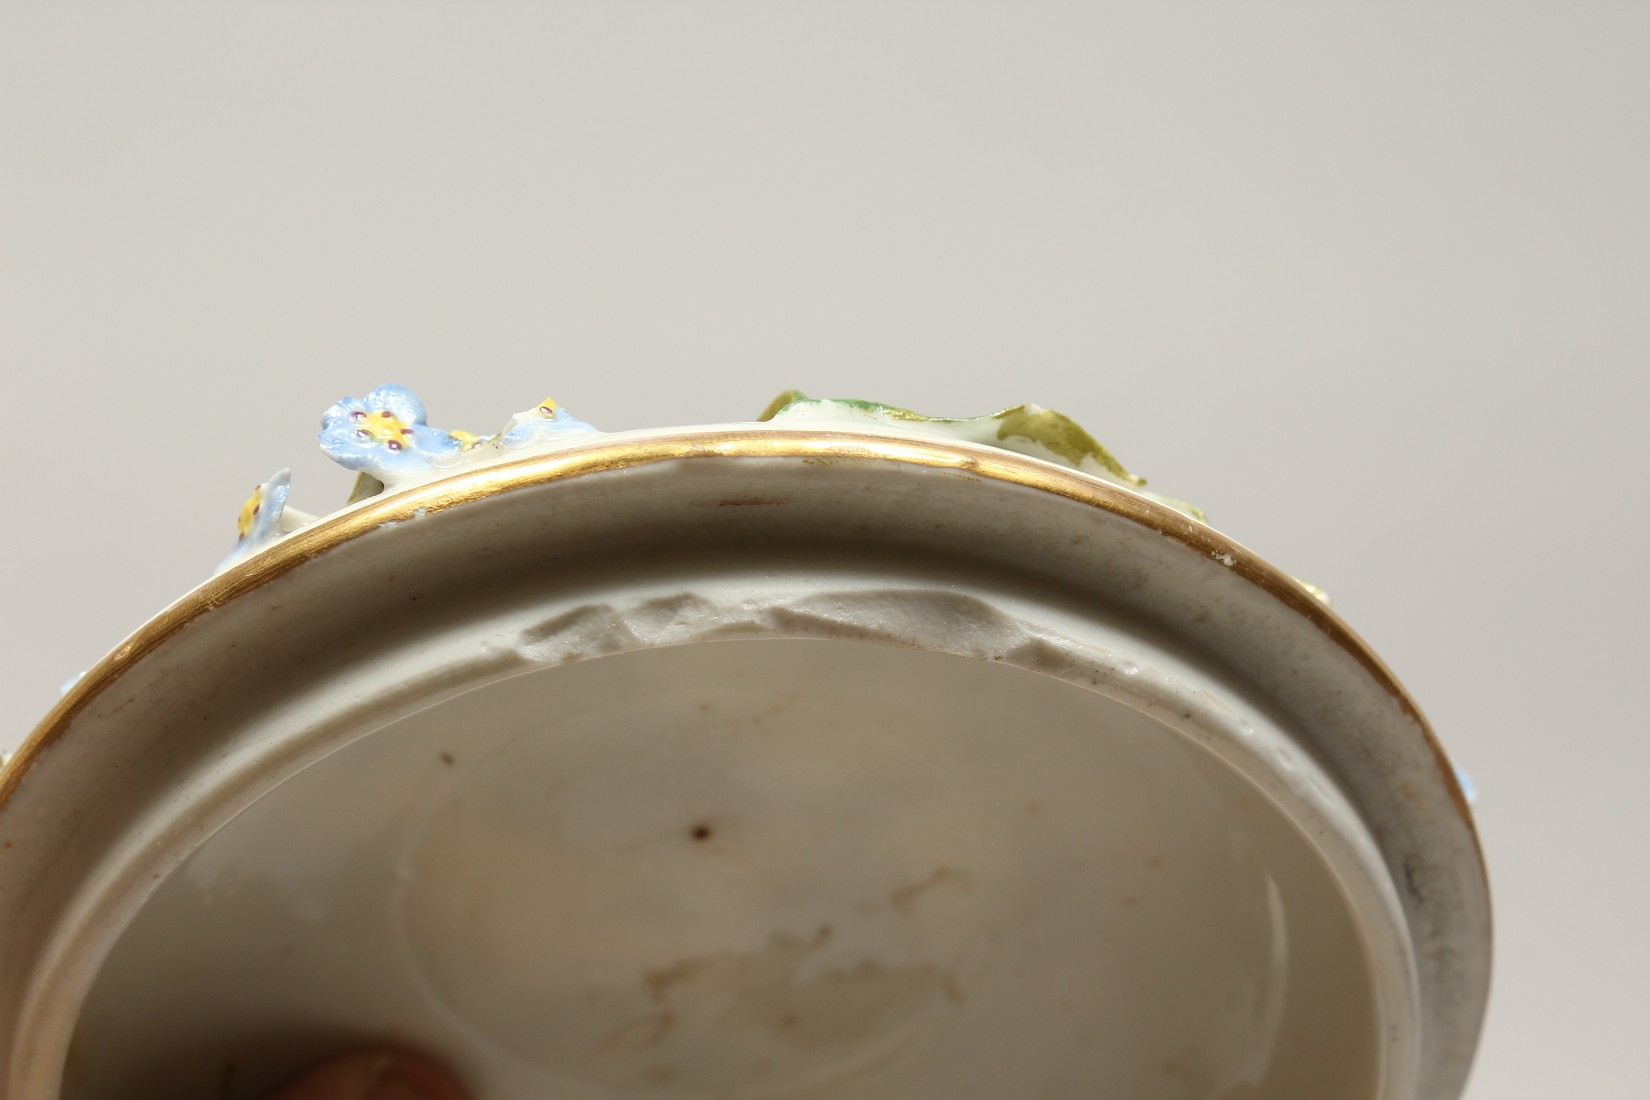 A DRESDON CIRCULAR BOWL AND COVER painted with moths and encrusted with flowers. 4.5ins diameter. - Image 8 of 8